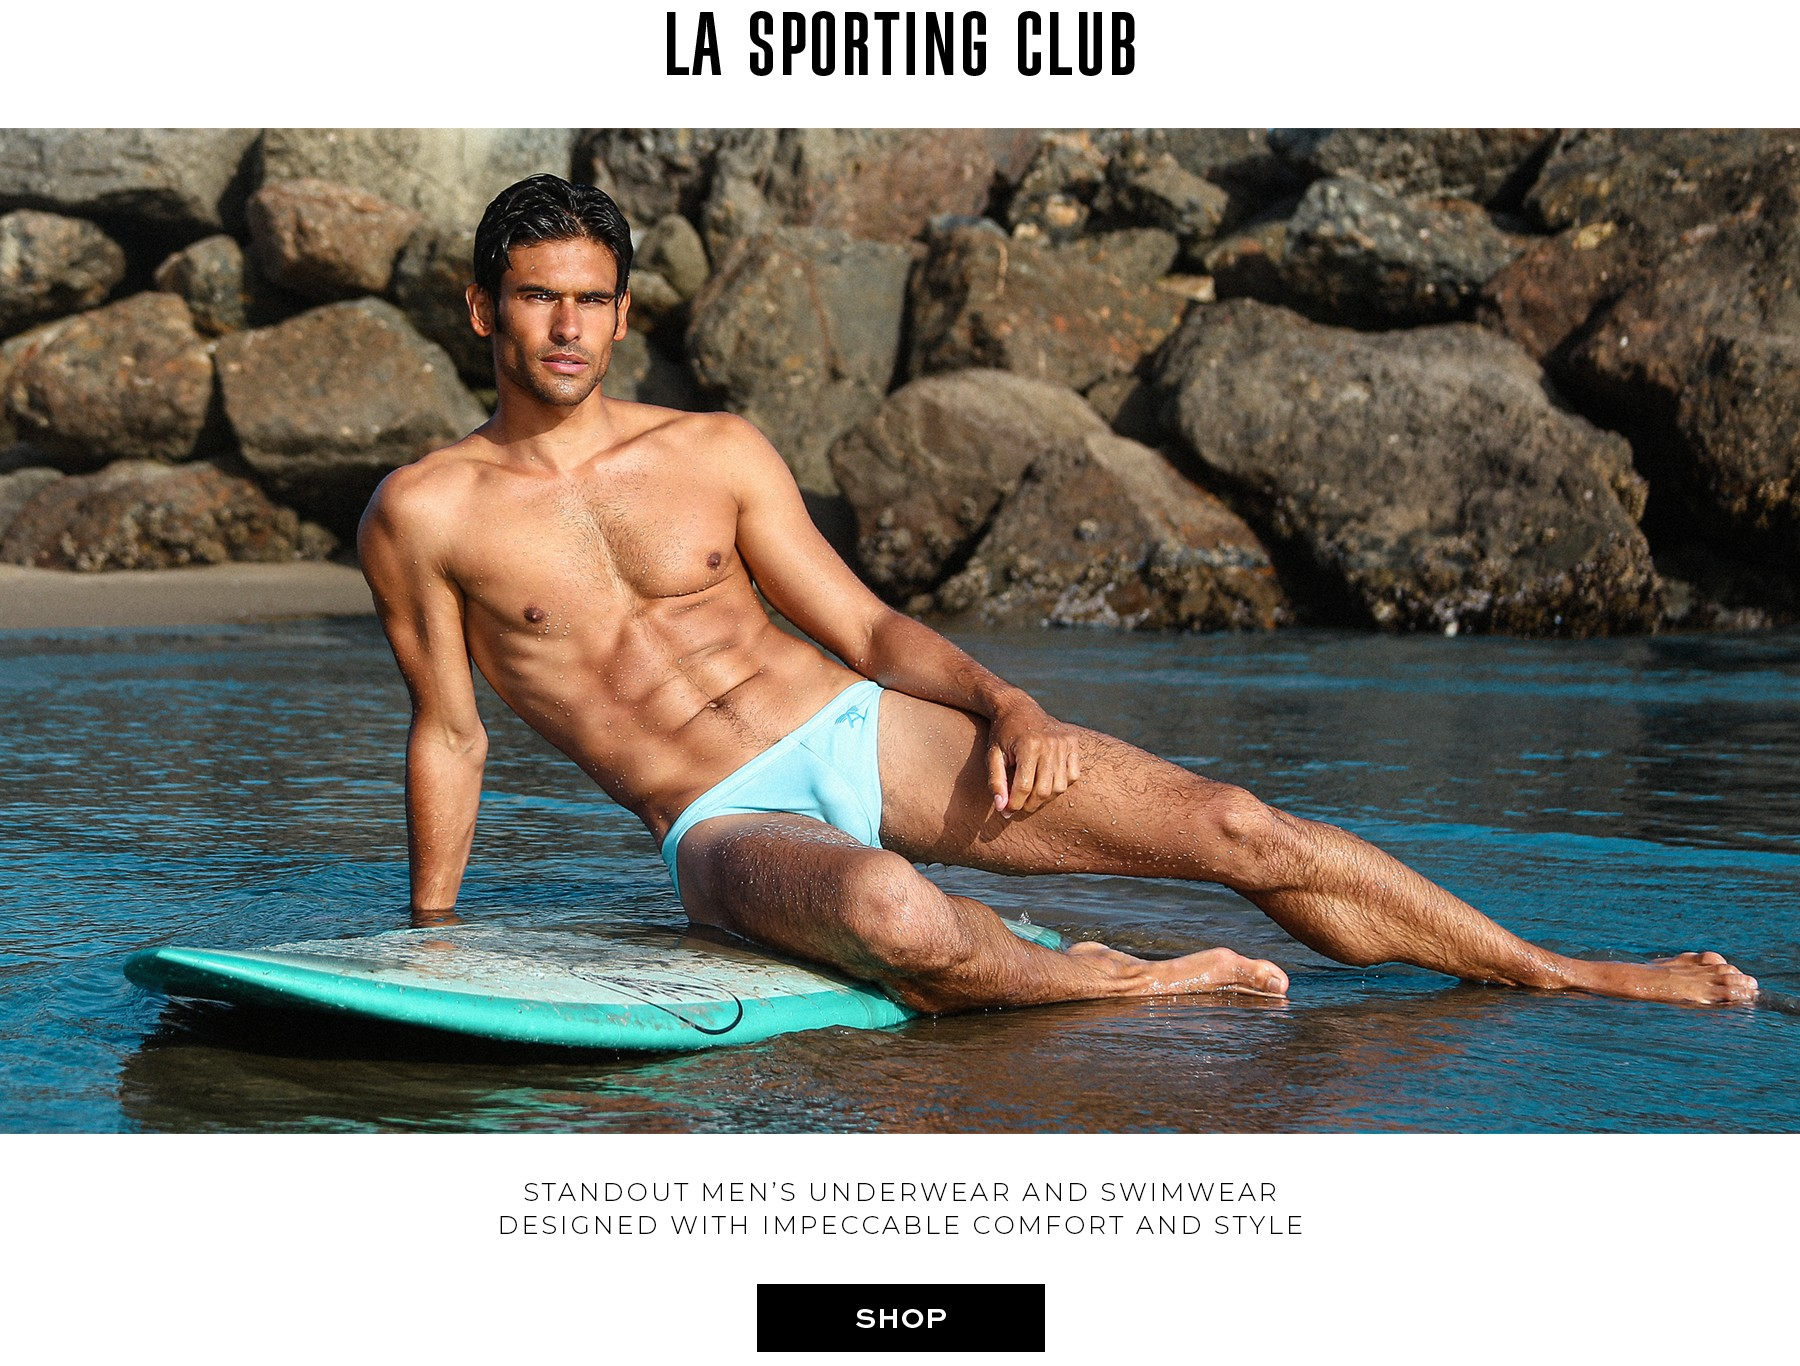 LASC swimwear worn at the beach by surfer